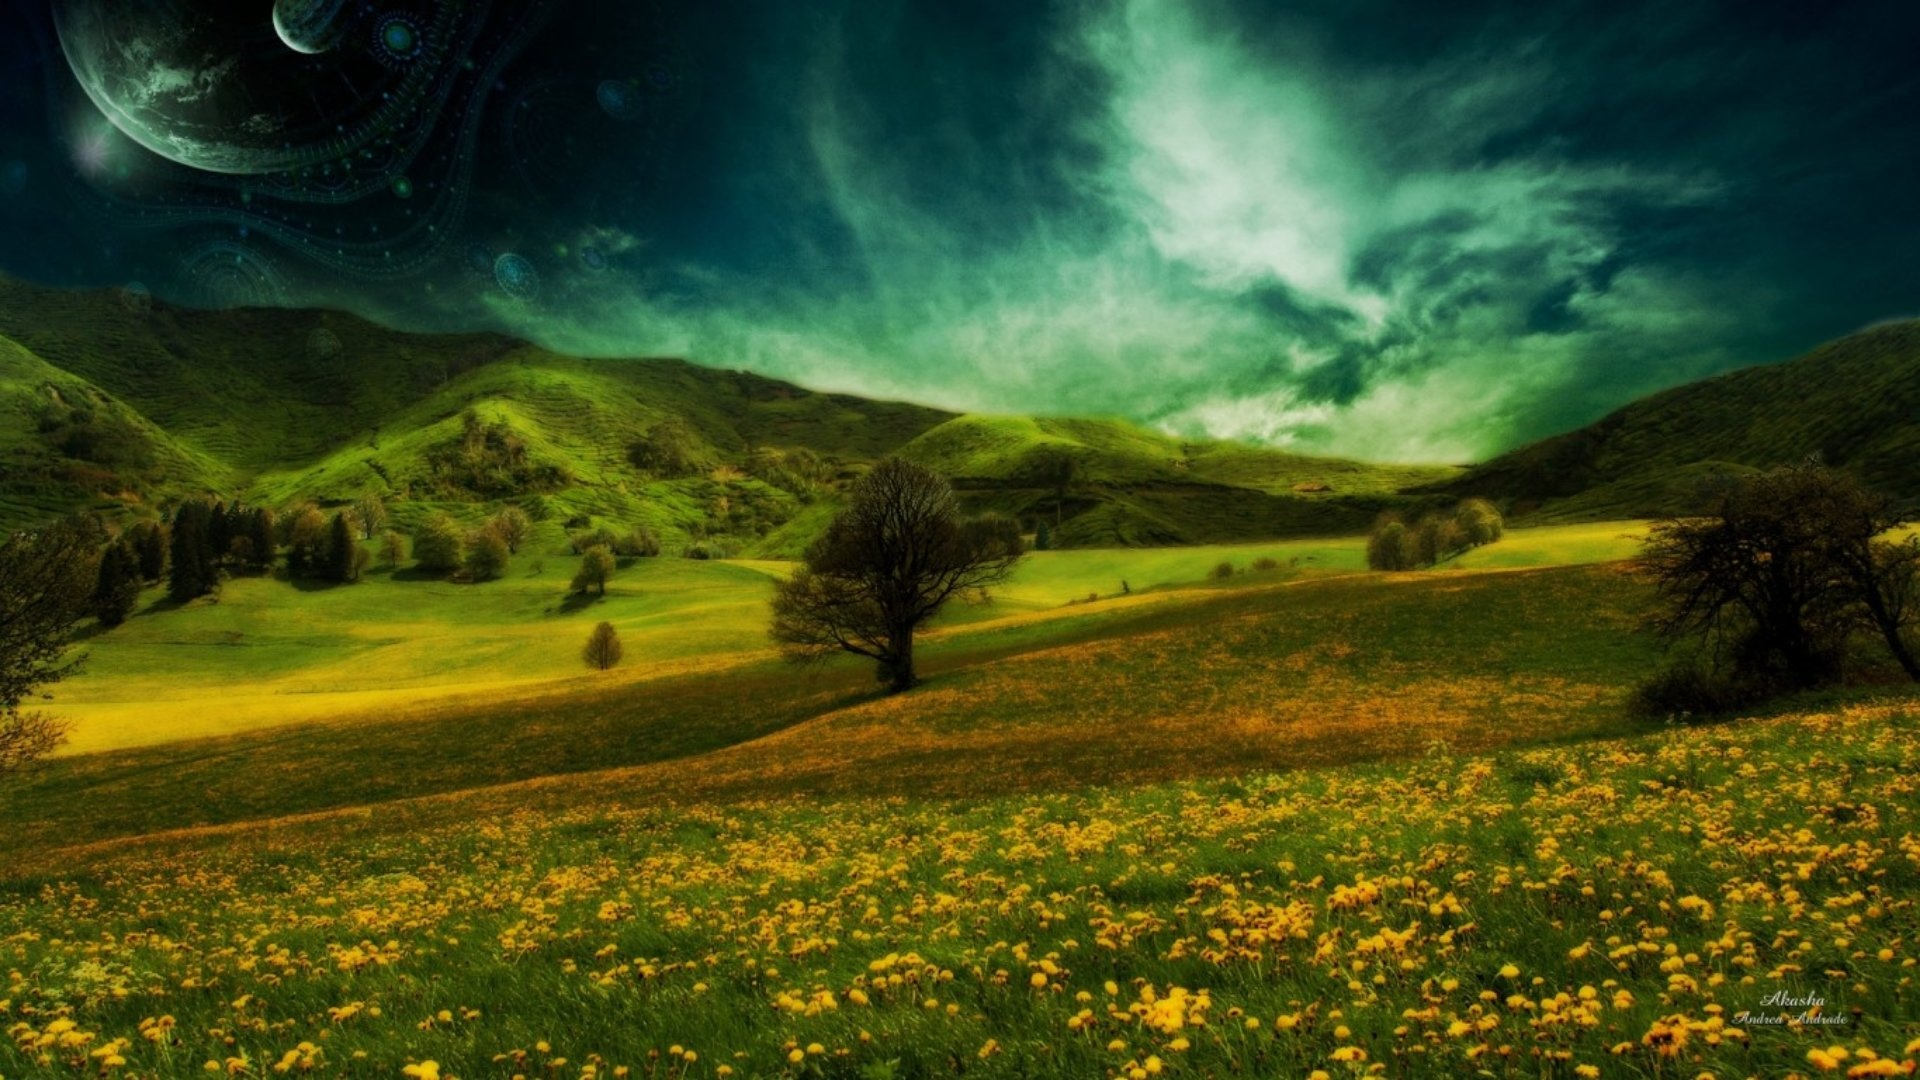 Pin Landscaping Hd Nature Wallpapers Widescreen 1920x1080 1920x1080